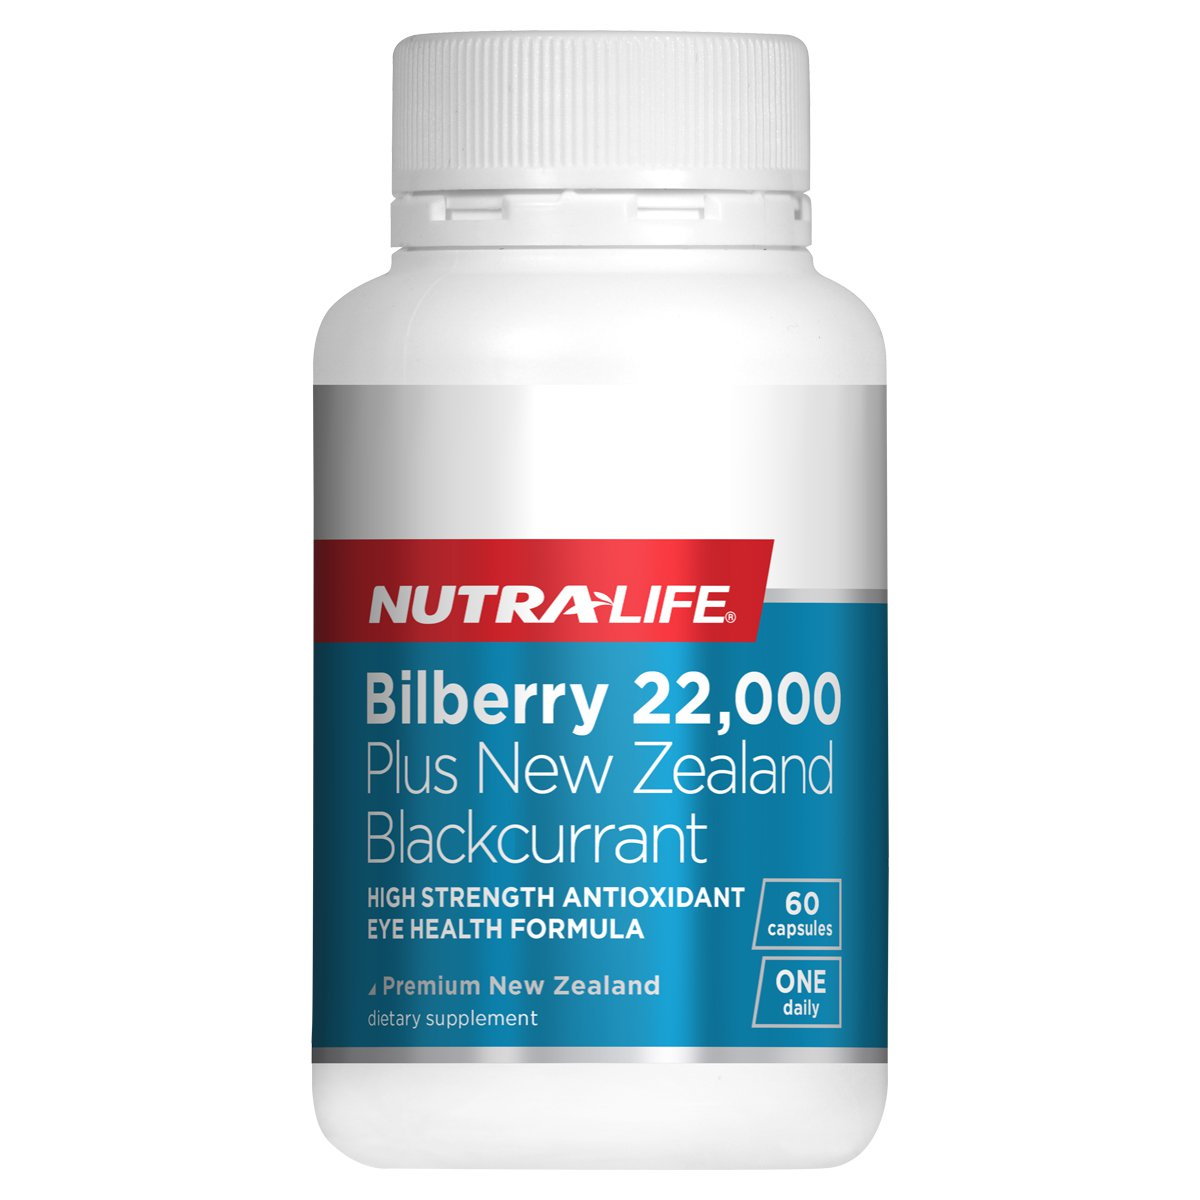 Nutra-Life Bilberry 22,000 plus NZ Blackcurrant